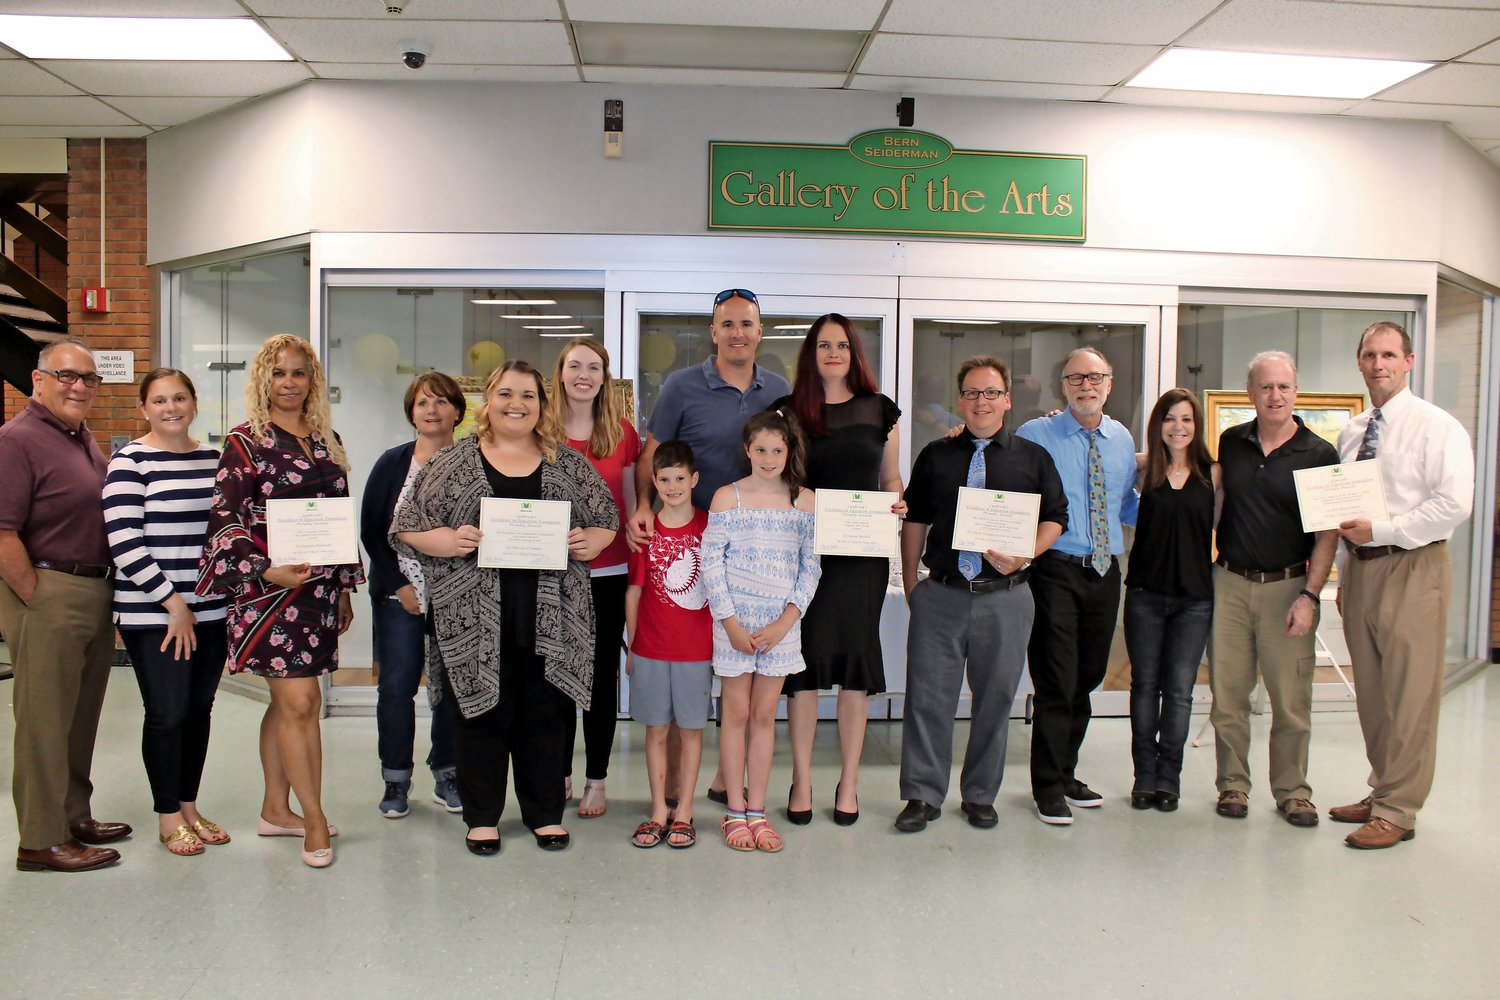 The grant winners at Excellence in Education Foundation, Inc.'s inaugural reception on May 31 spent time with the families who funded the grants.